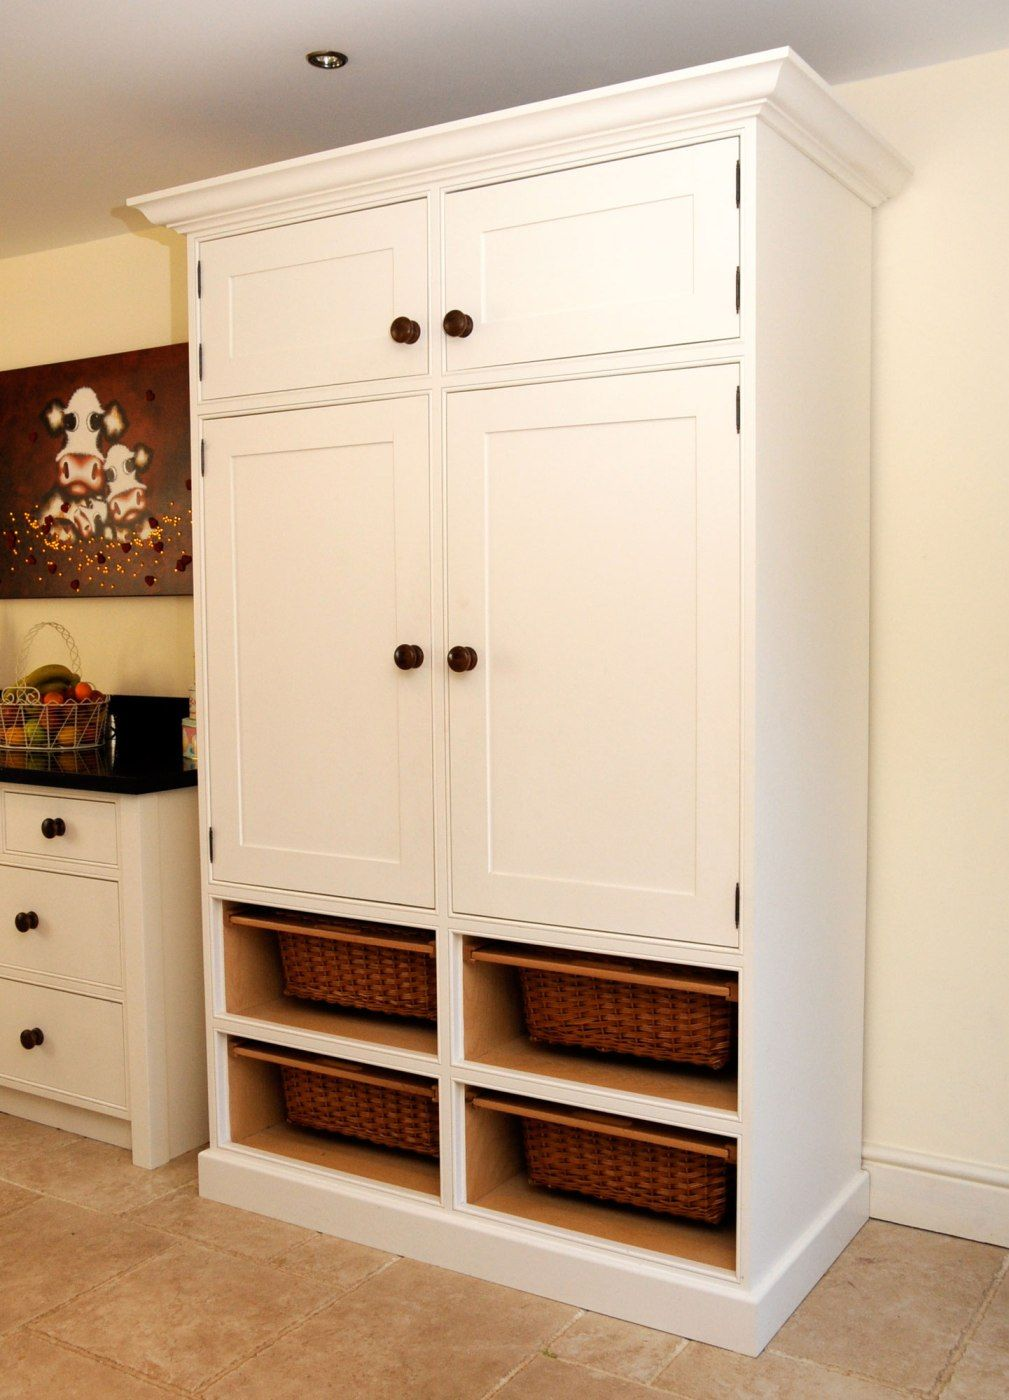 free standing kitchen cabinets Lowes Free Standing Kitchen Cabinets